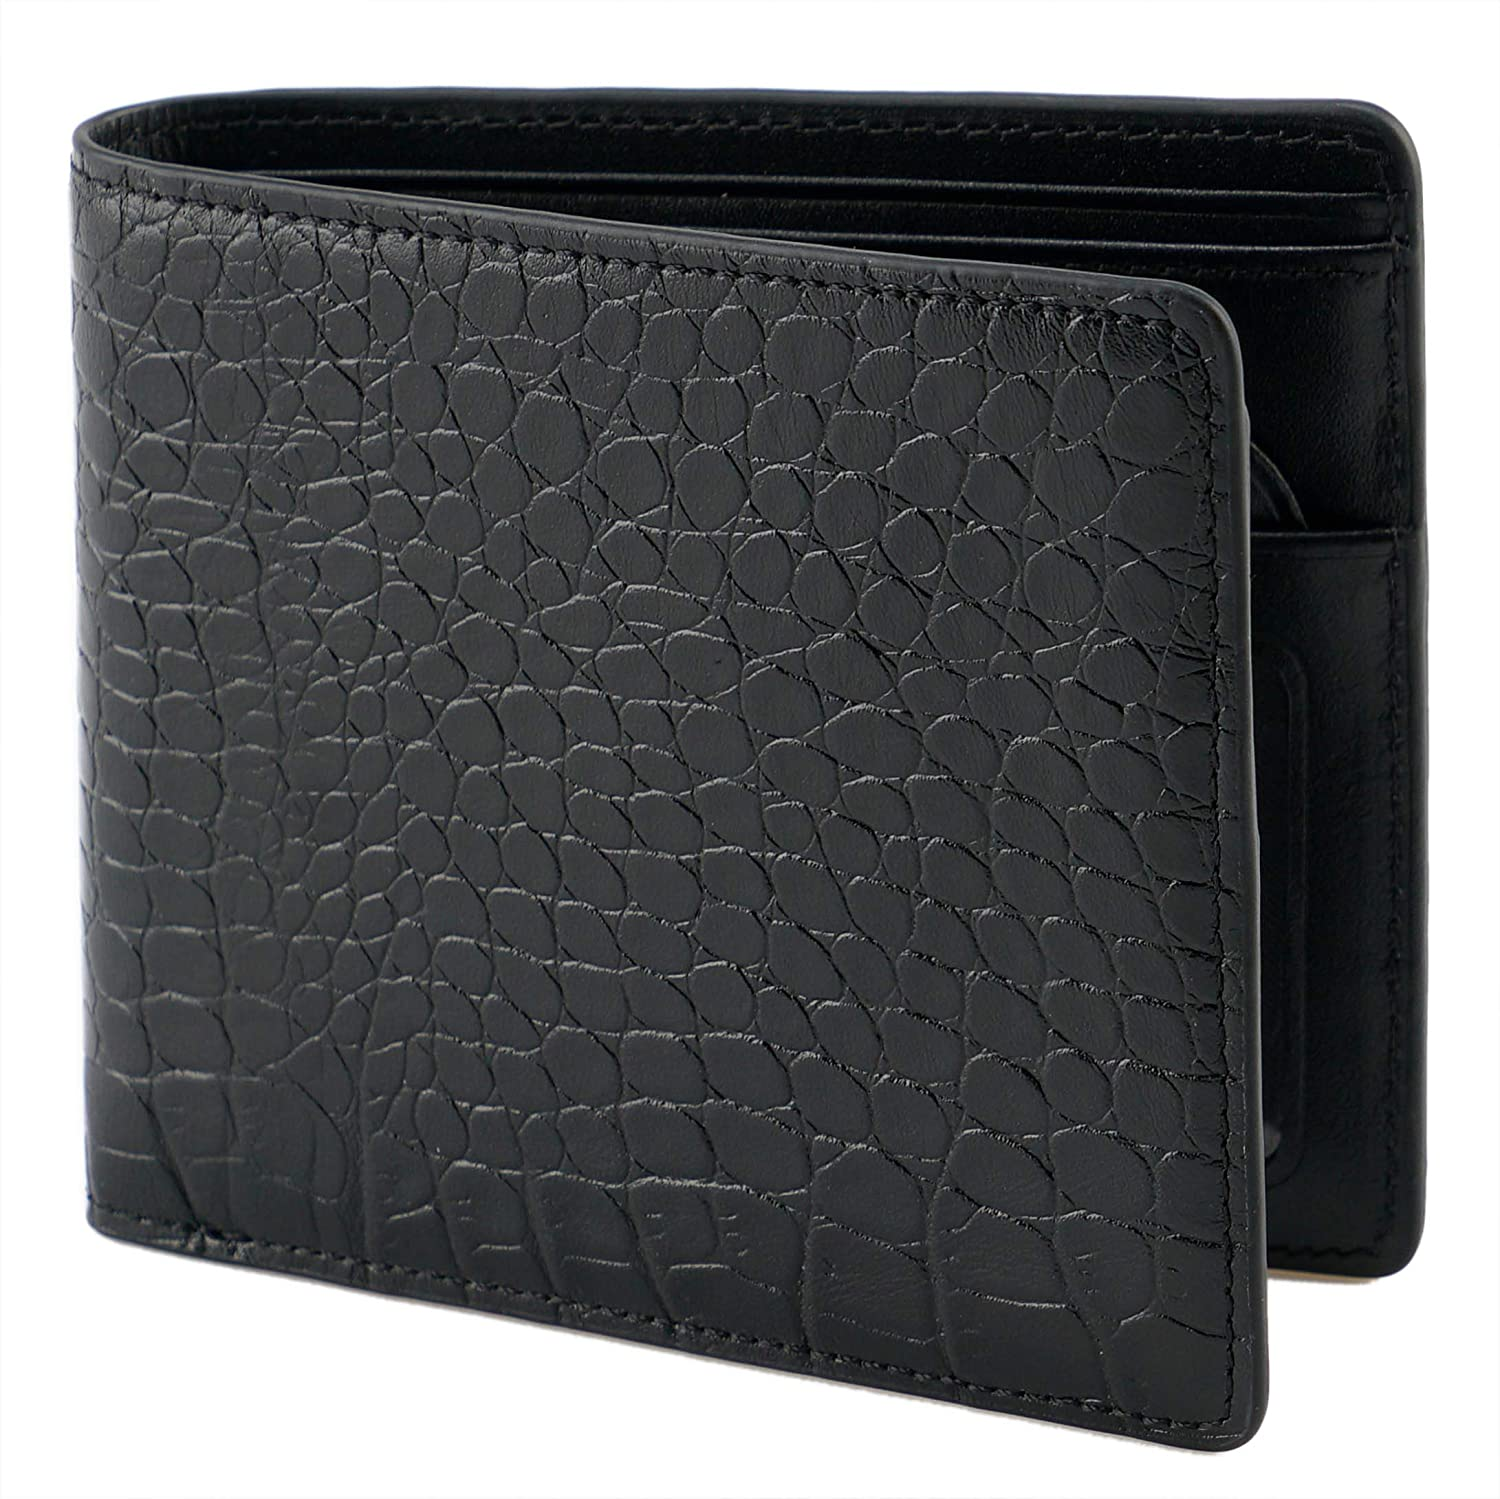 204df7e601 Lethnic Mens Bifold Wallet Vertical/Horizontal, Crocodile Embossed Cowhide  Genuine Leather, Super Slim